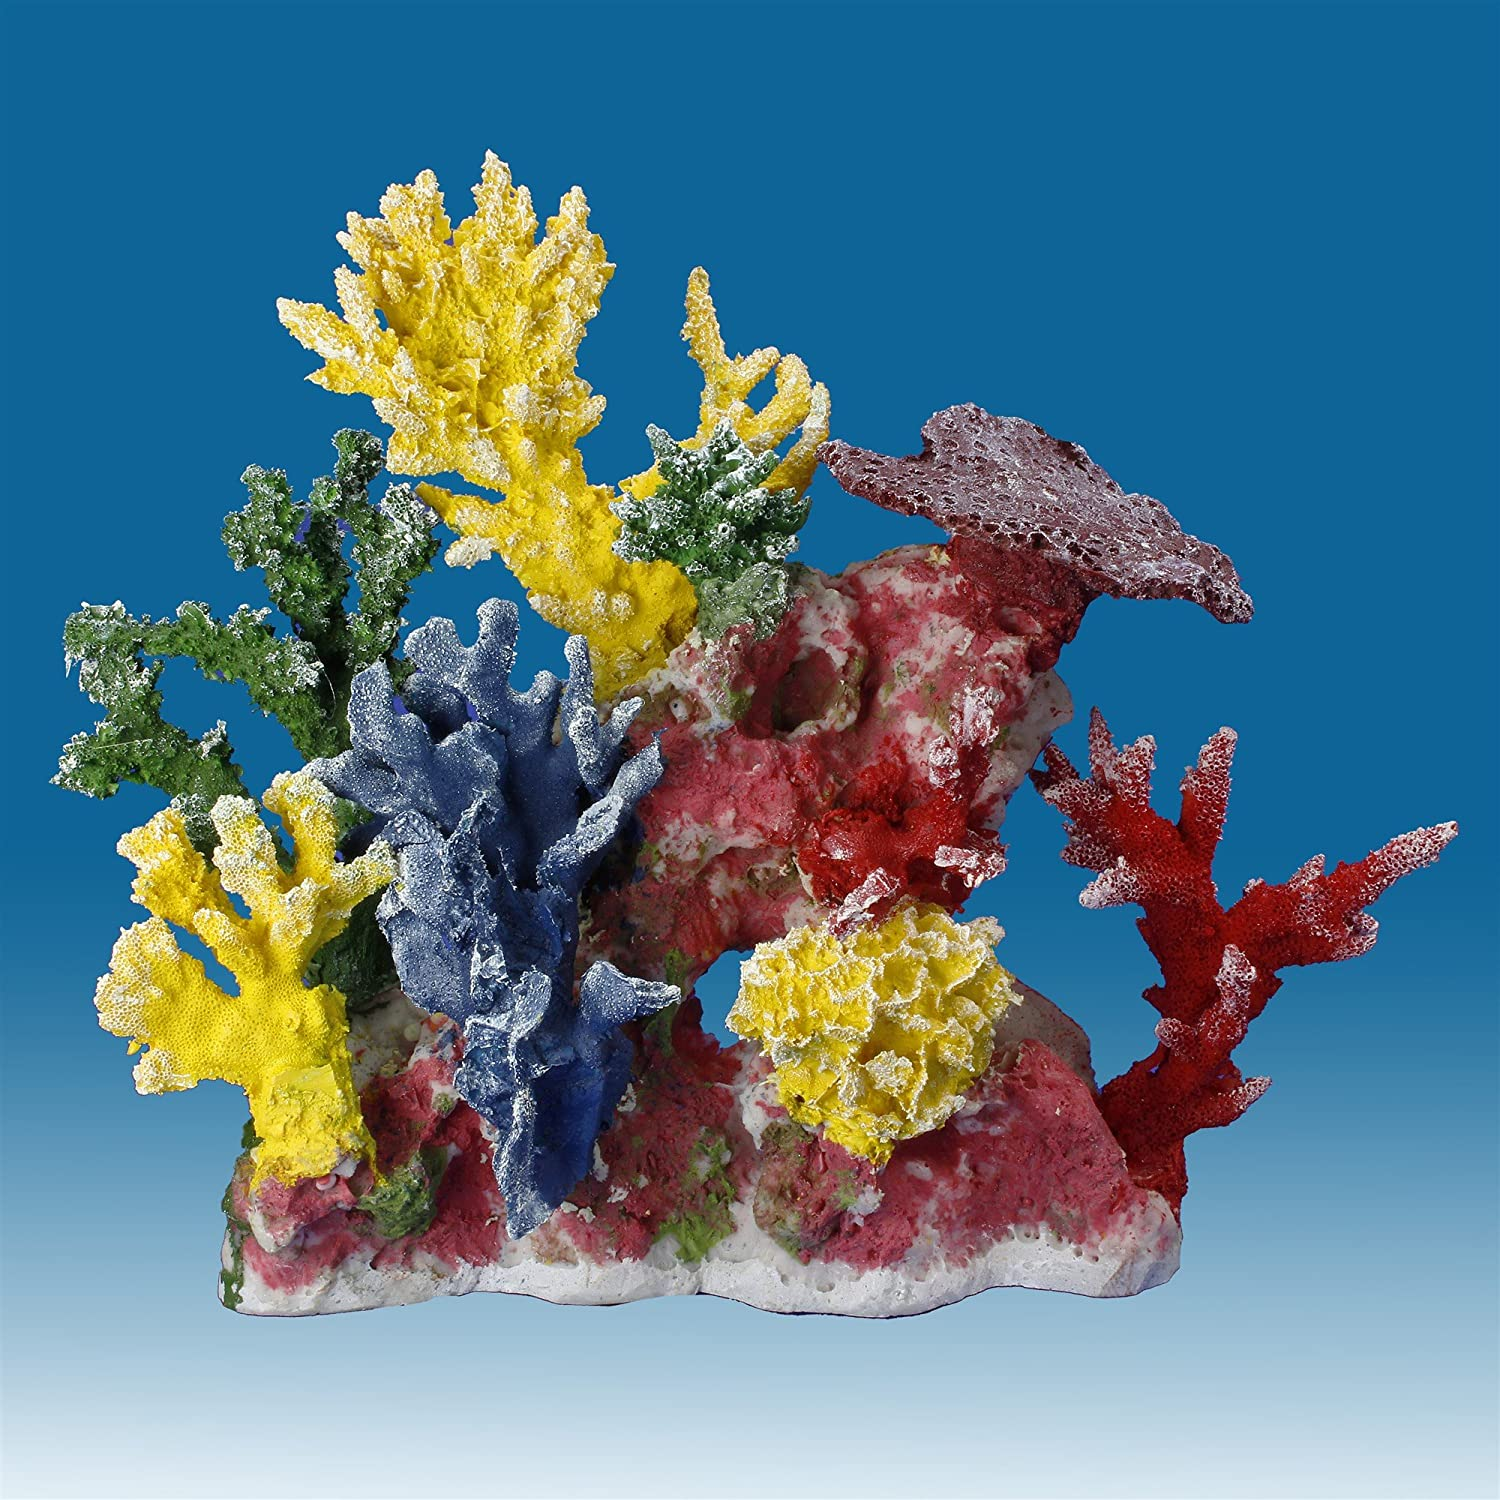 Instant Artificial Coral Inserts Decor